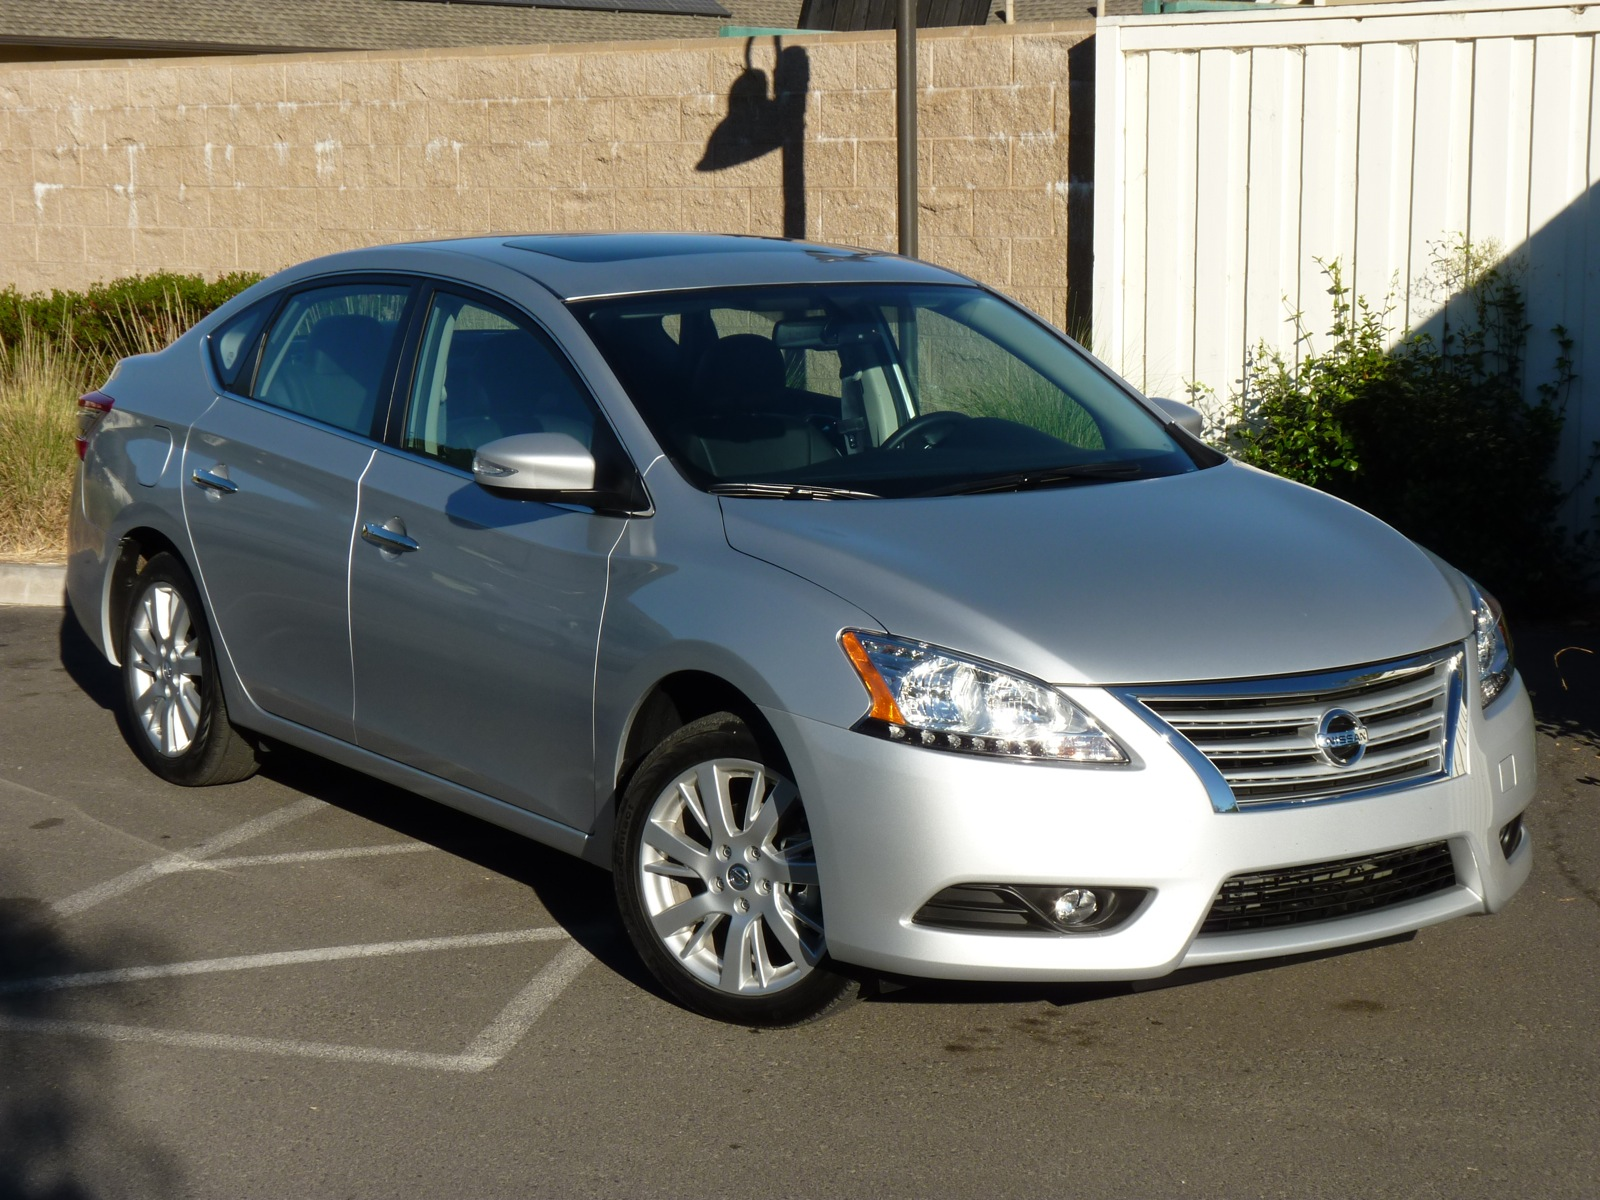 nissan sentra details reviews gas mileage